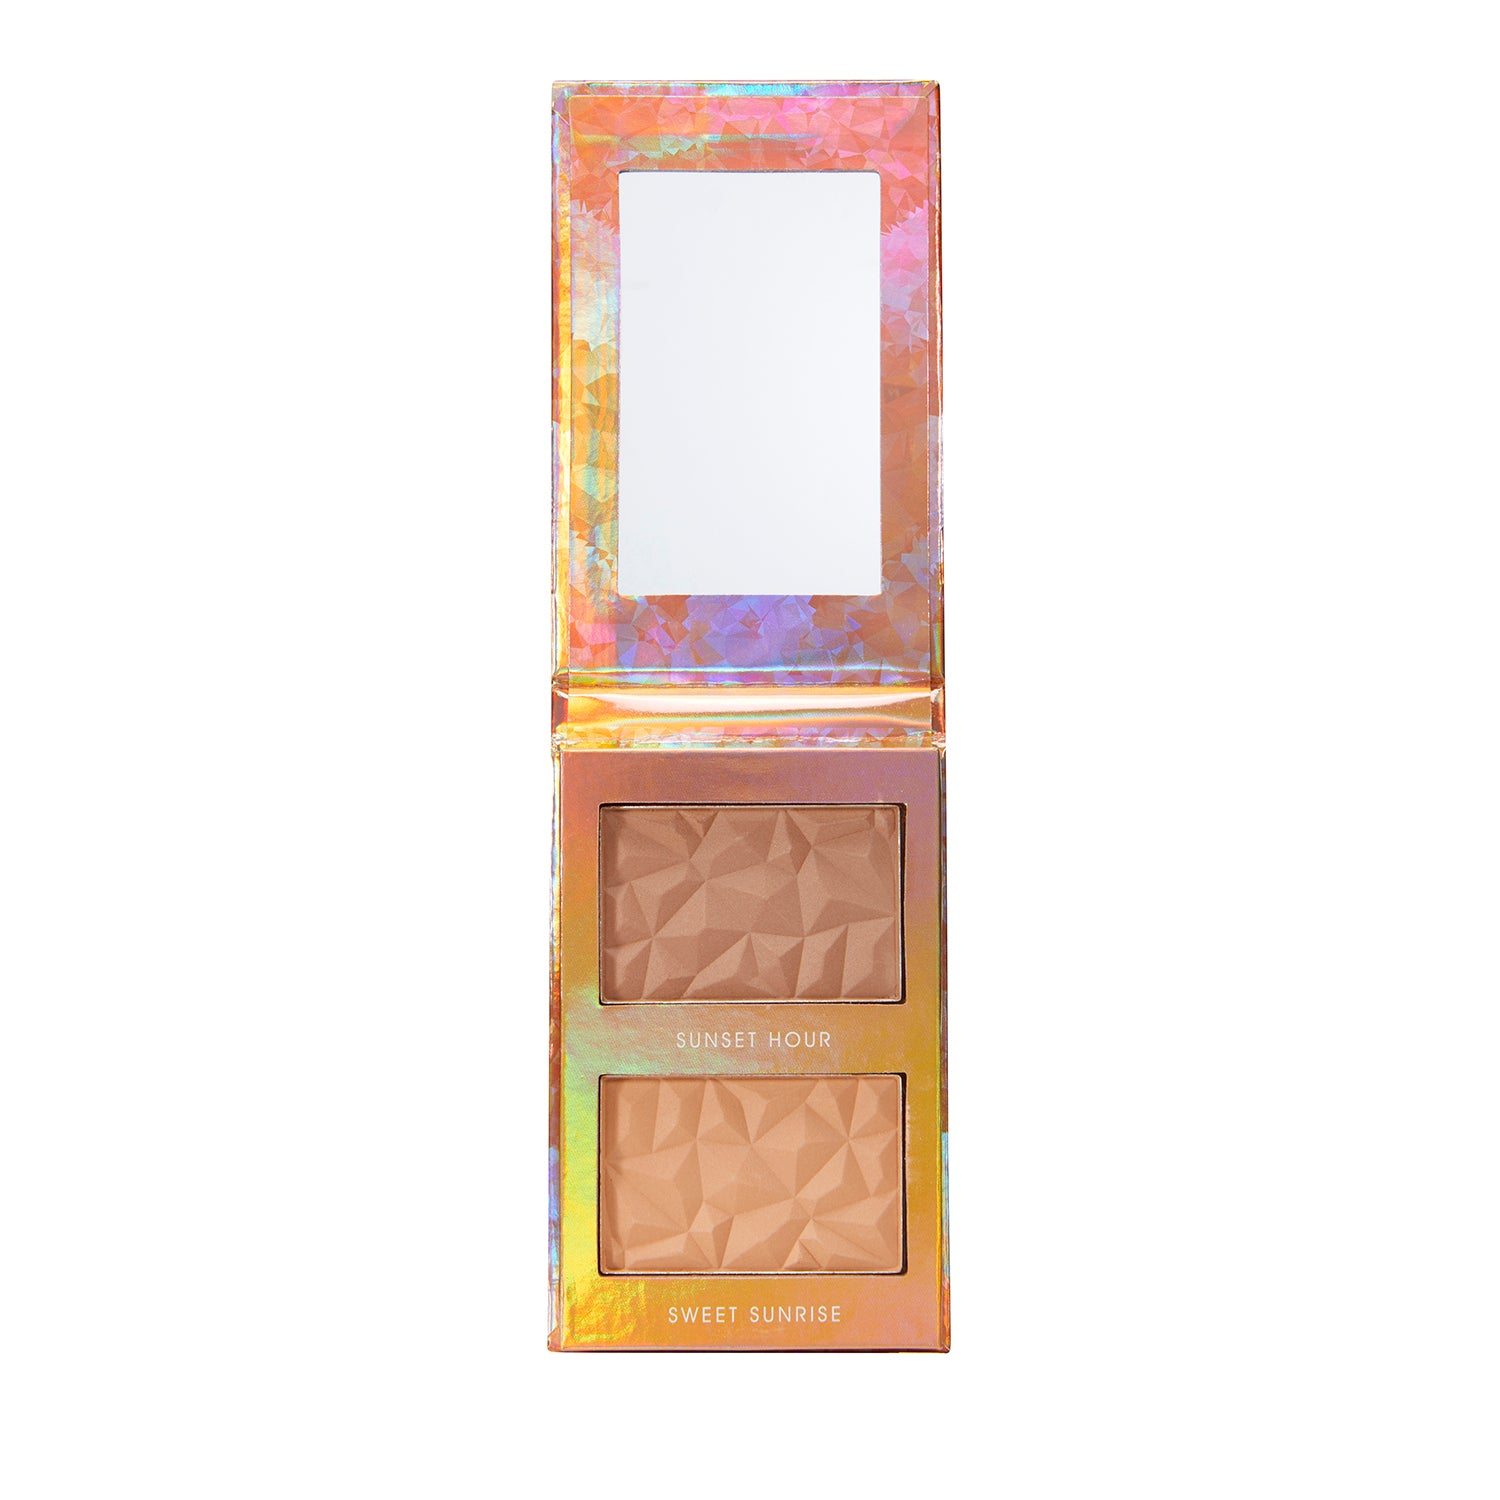 Sunkissed Precious Treasure Sunstone Bronzer Duo